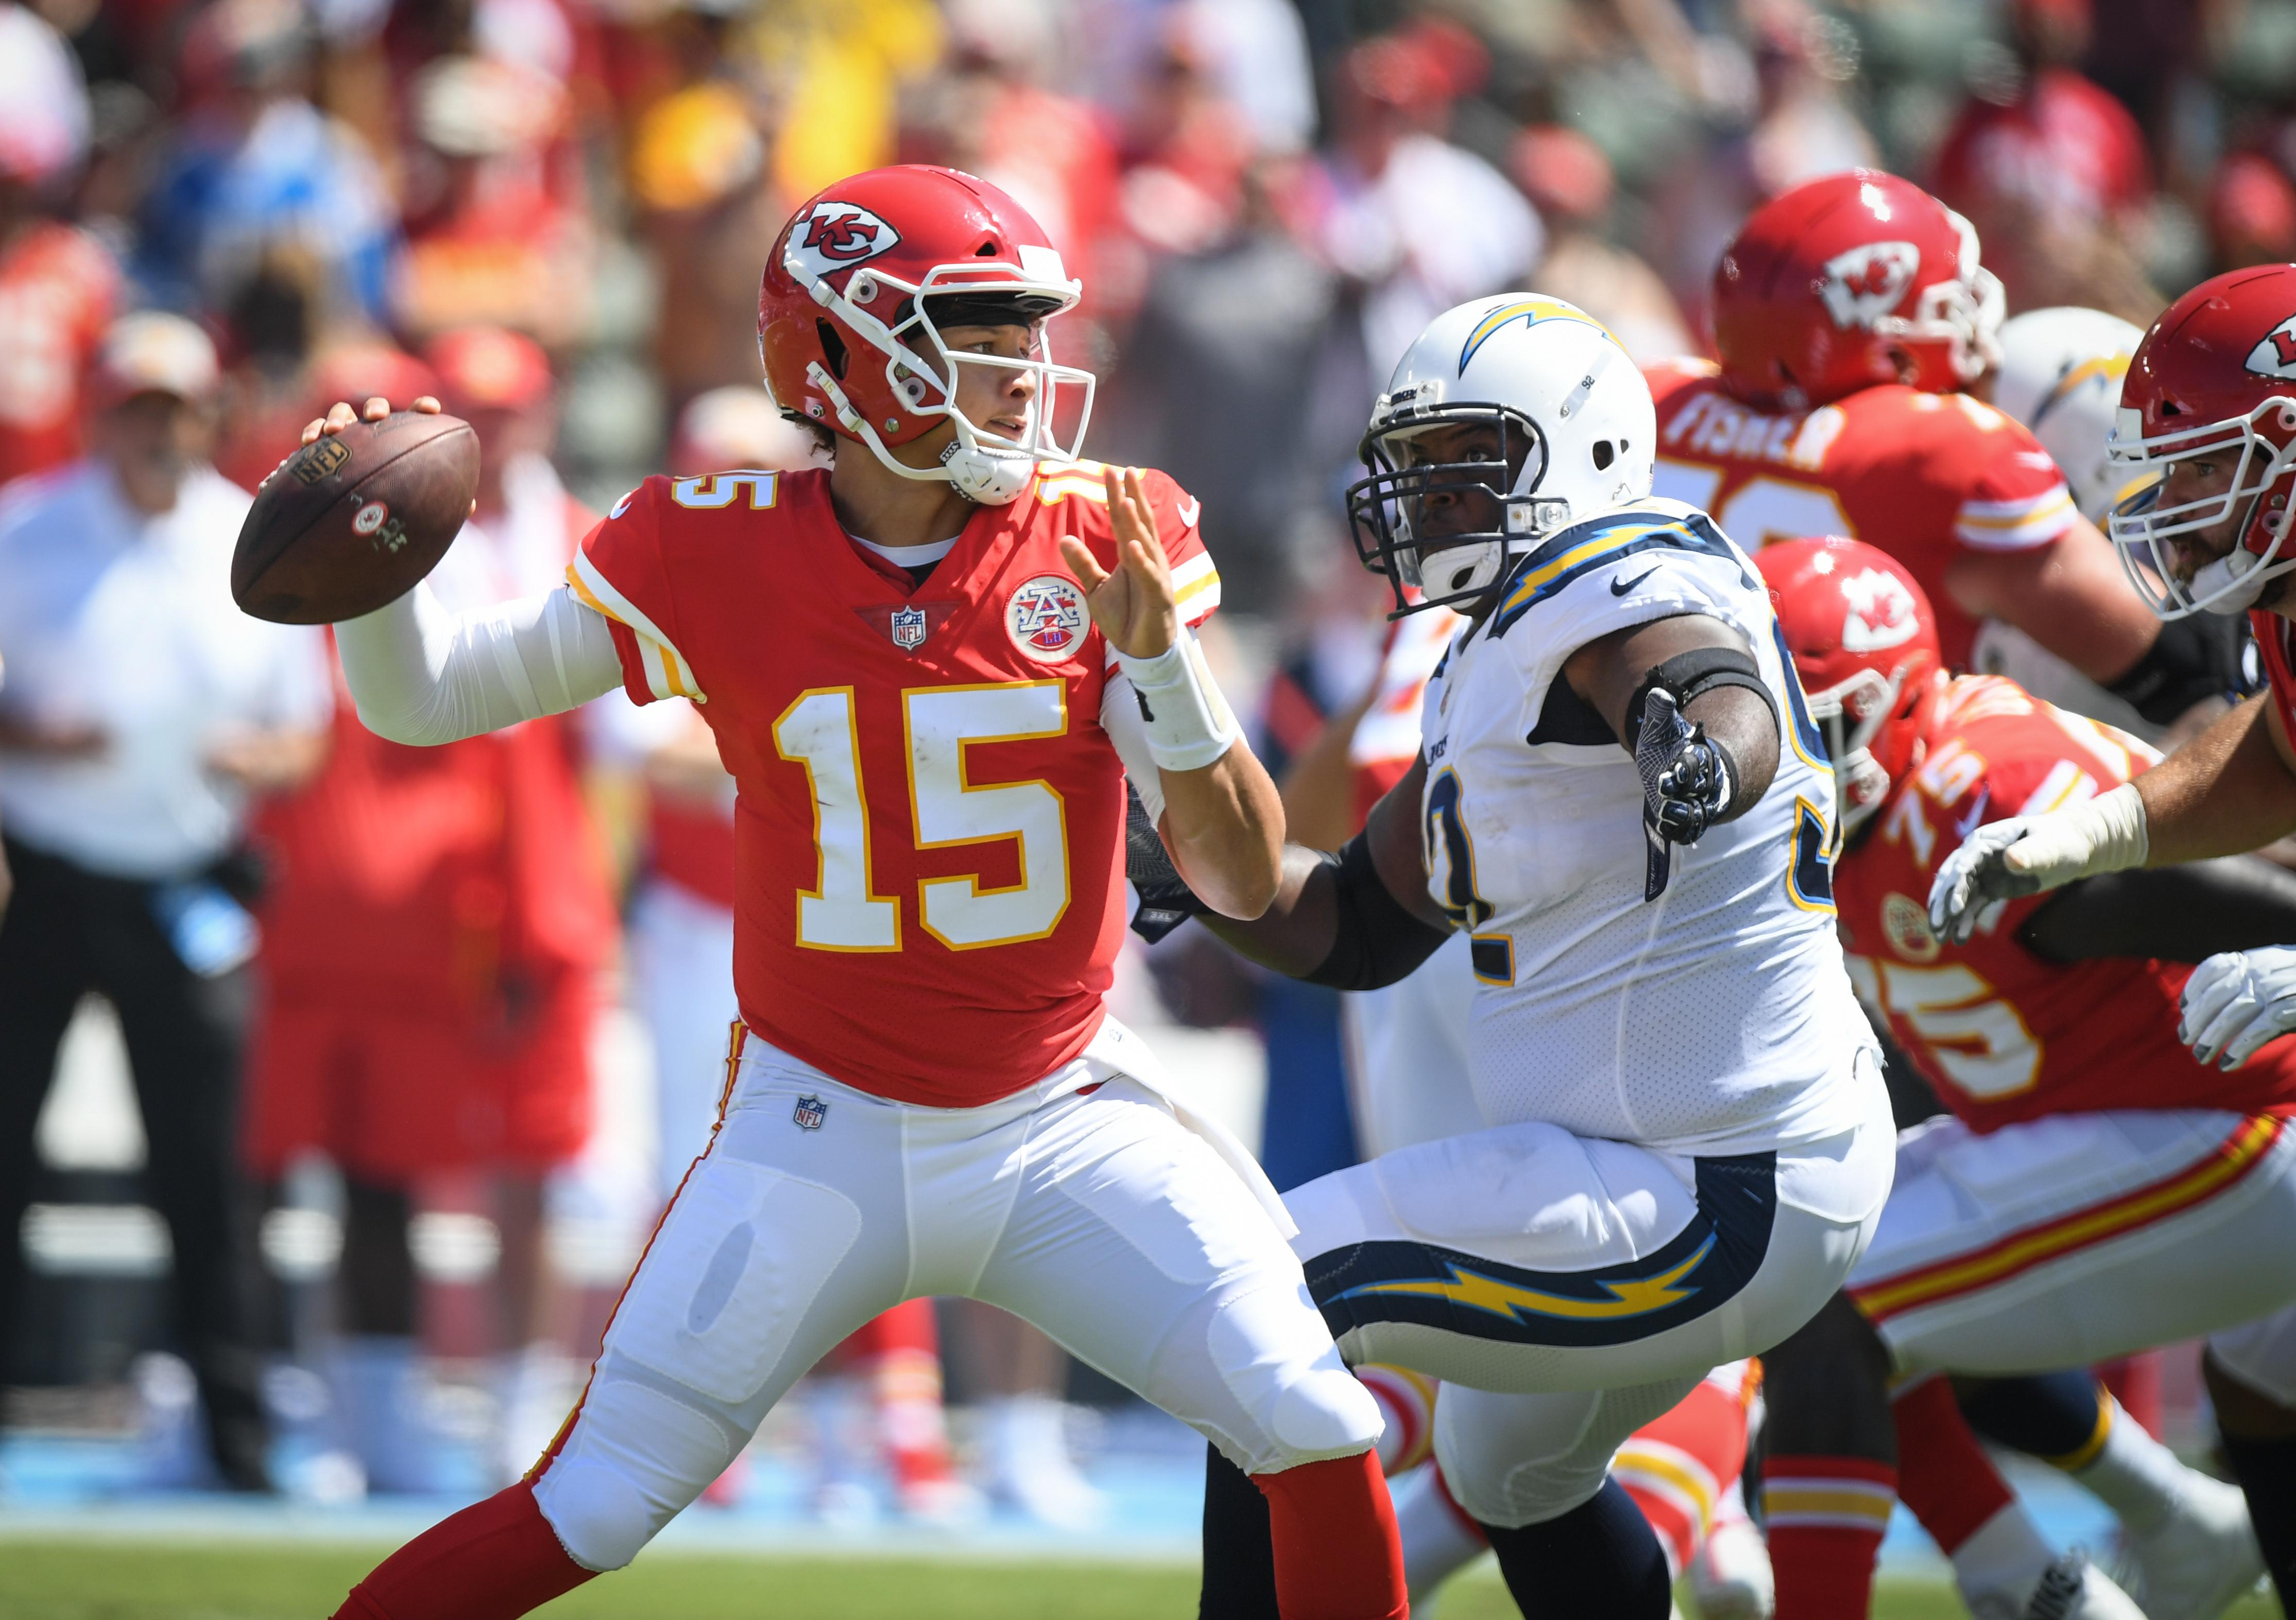 Kansas City Chiefs Vs La Chargers 2019 Prediction Against